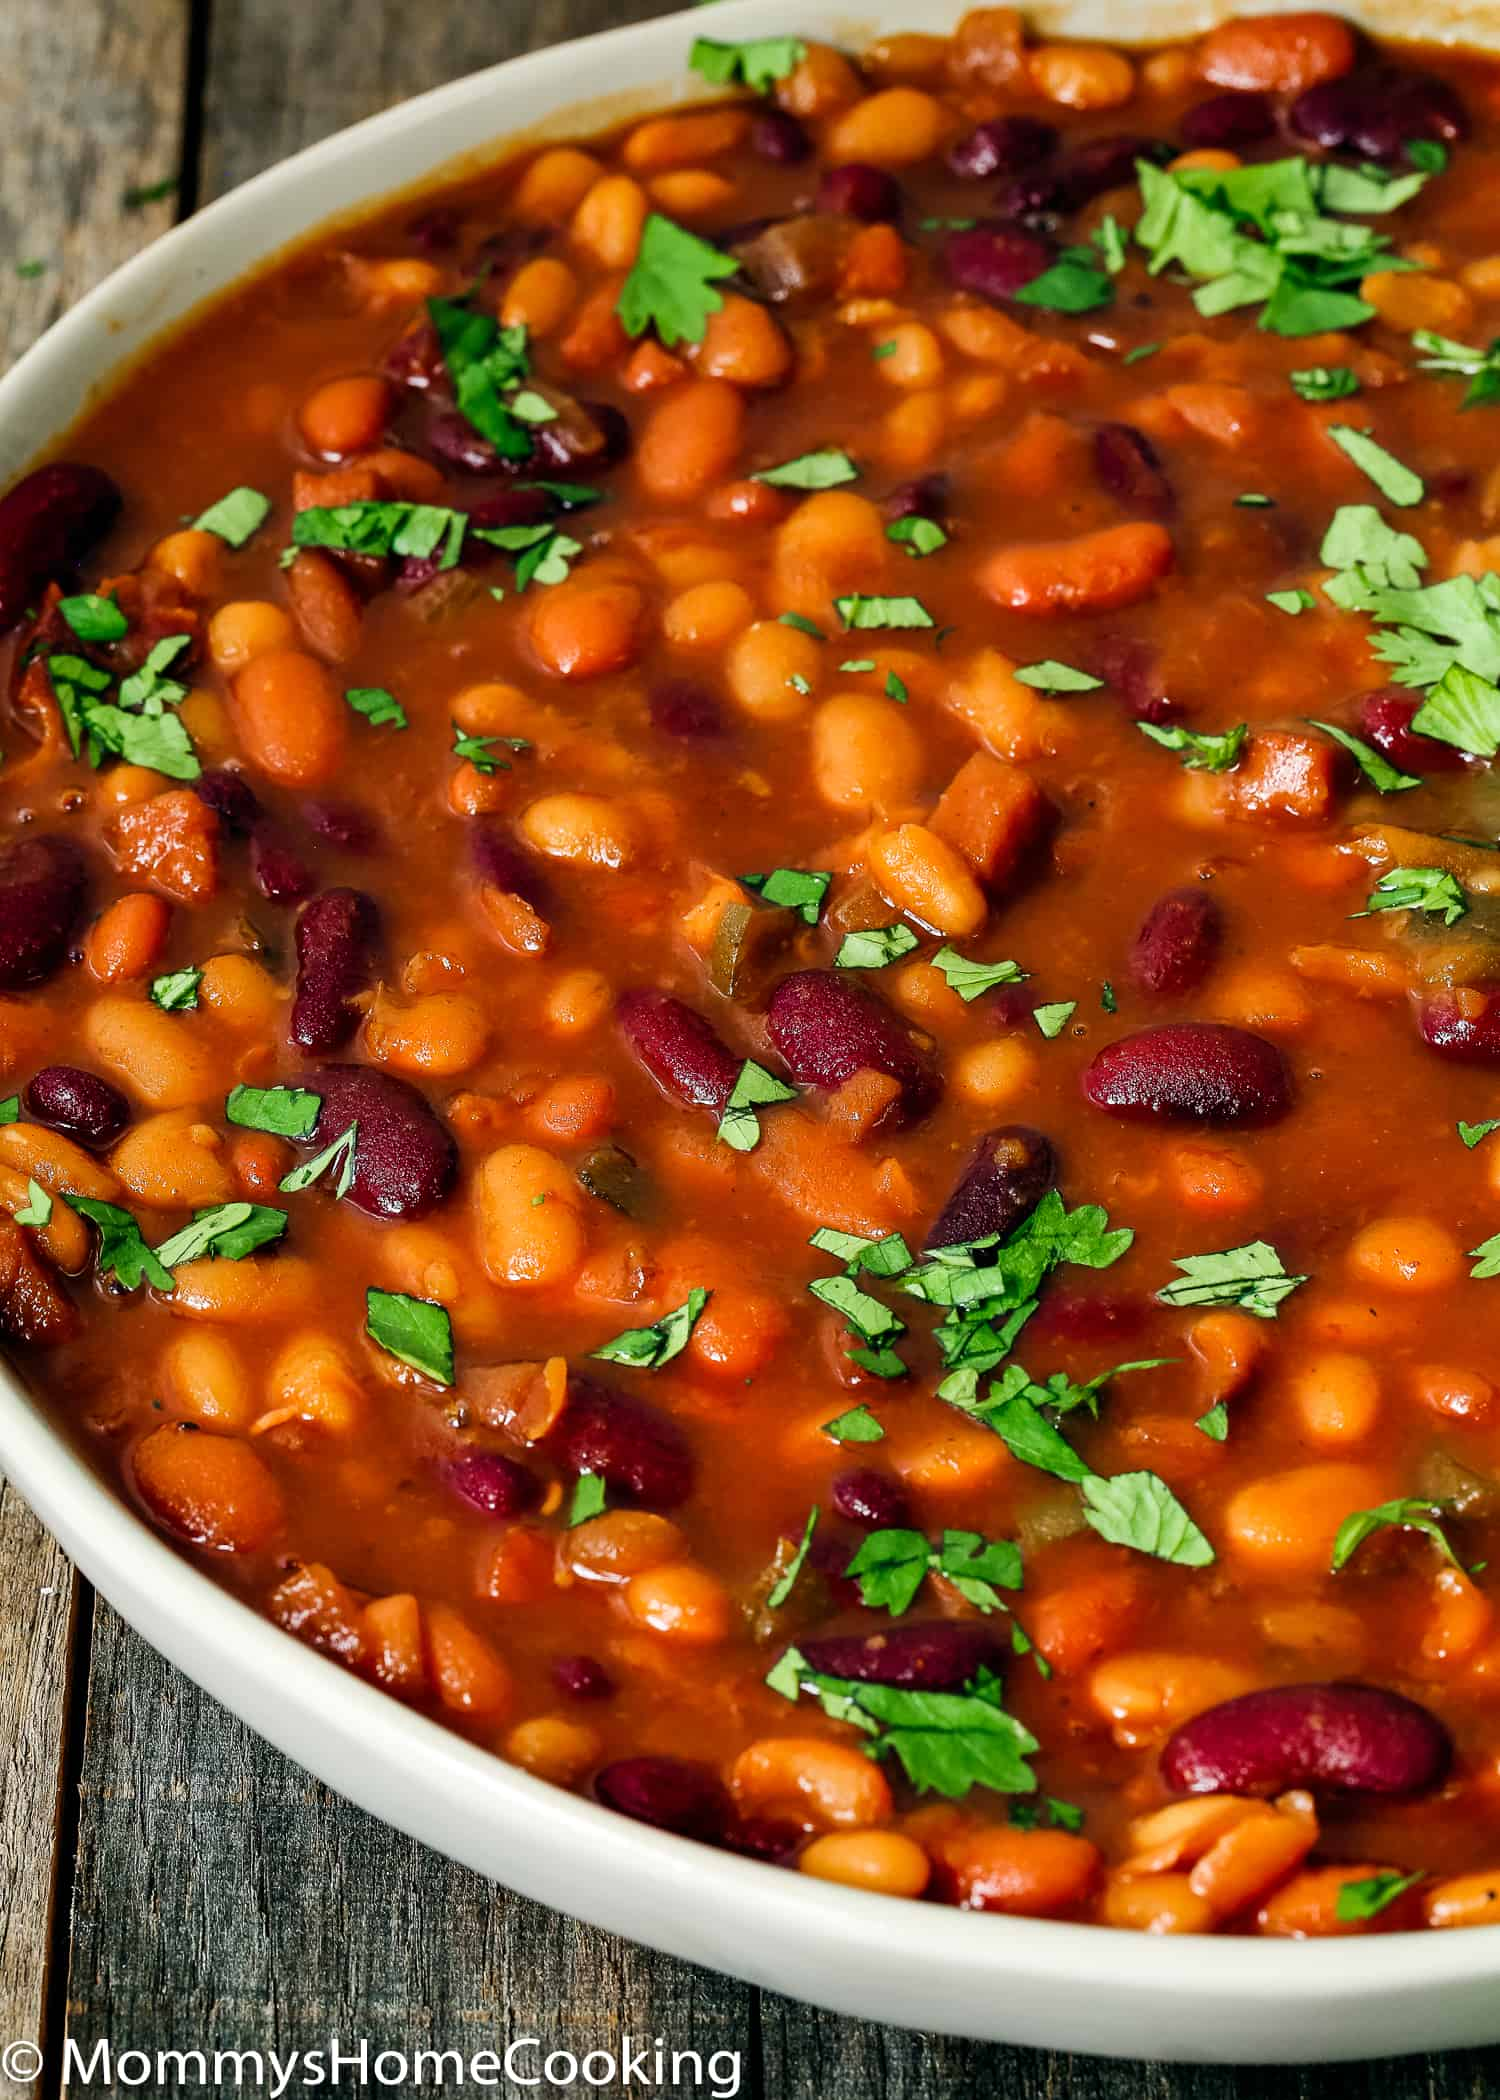 These Easy Instant Pot Baked Beans are hearty, filling and super delicious! Ready in less than 30 minutes this easy Instant Pot baked beans recipe will become a favorite! Perfect for your next BBQ or potluck. https://mommyshomecooking.com